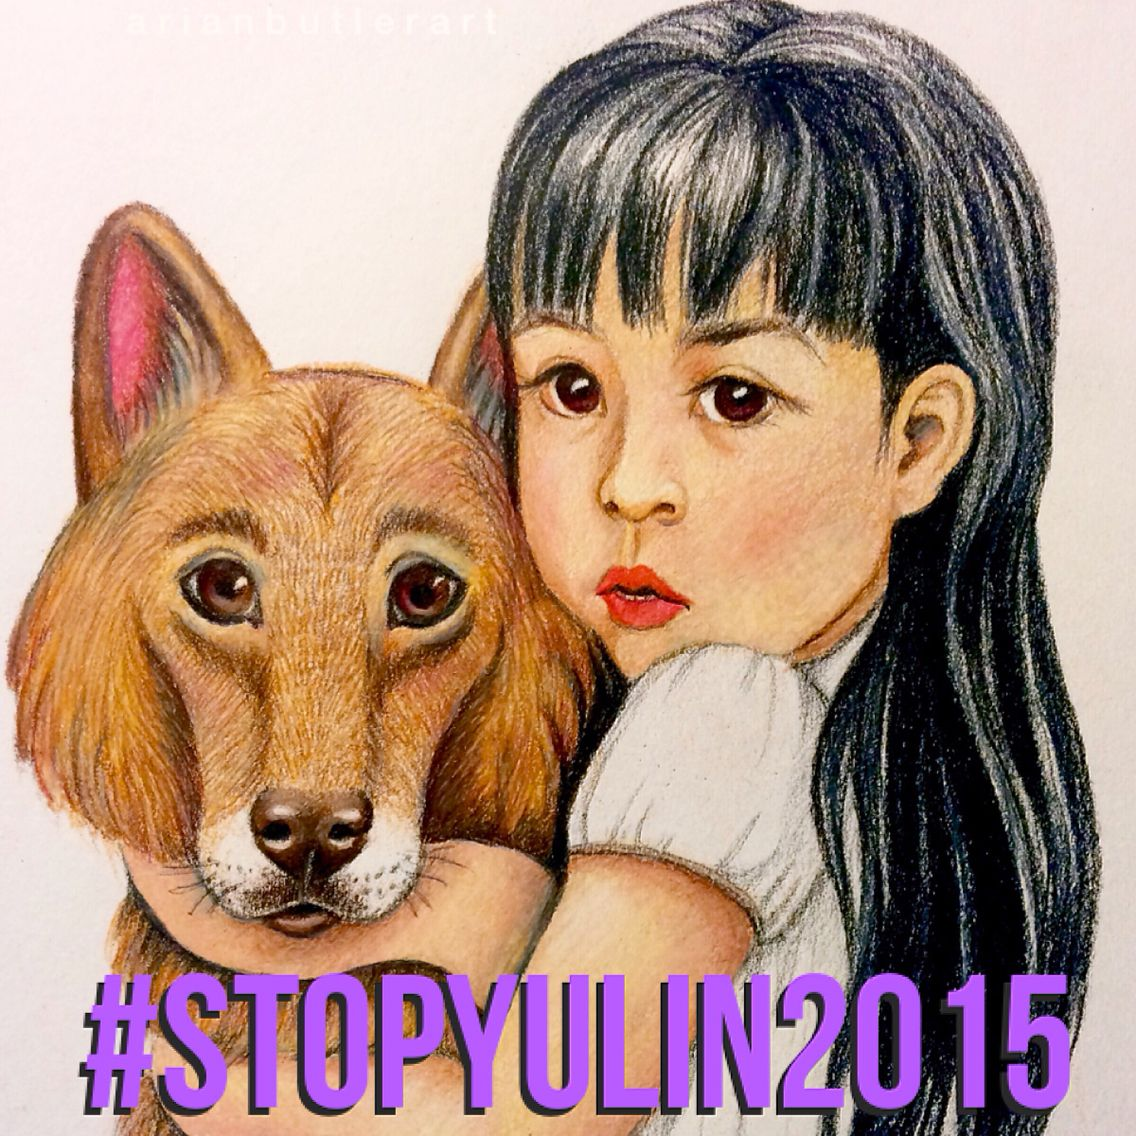 This issue has really broken my heart, but inspired me to do something to help. I drew this image in colored pencil, wanting to help raise awareness. #stopyulin2015